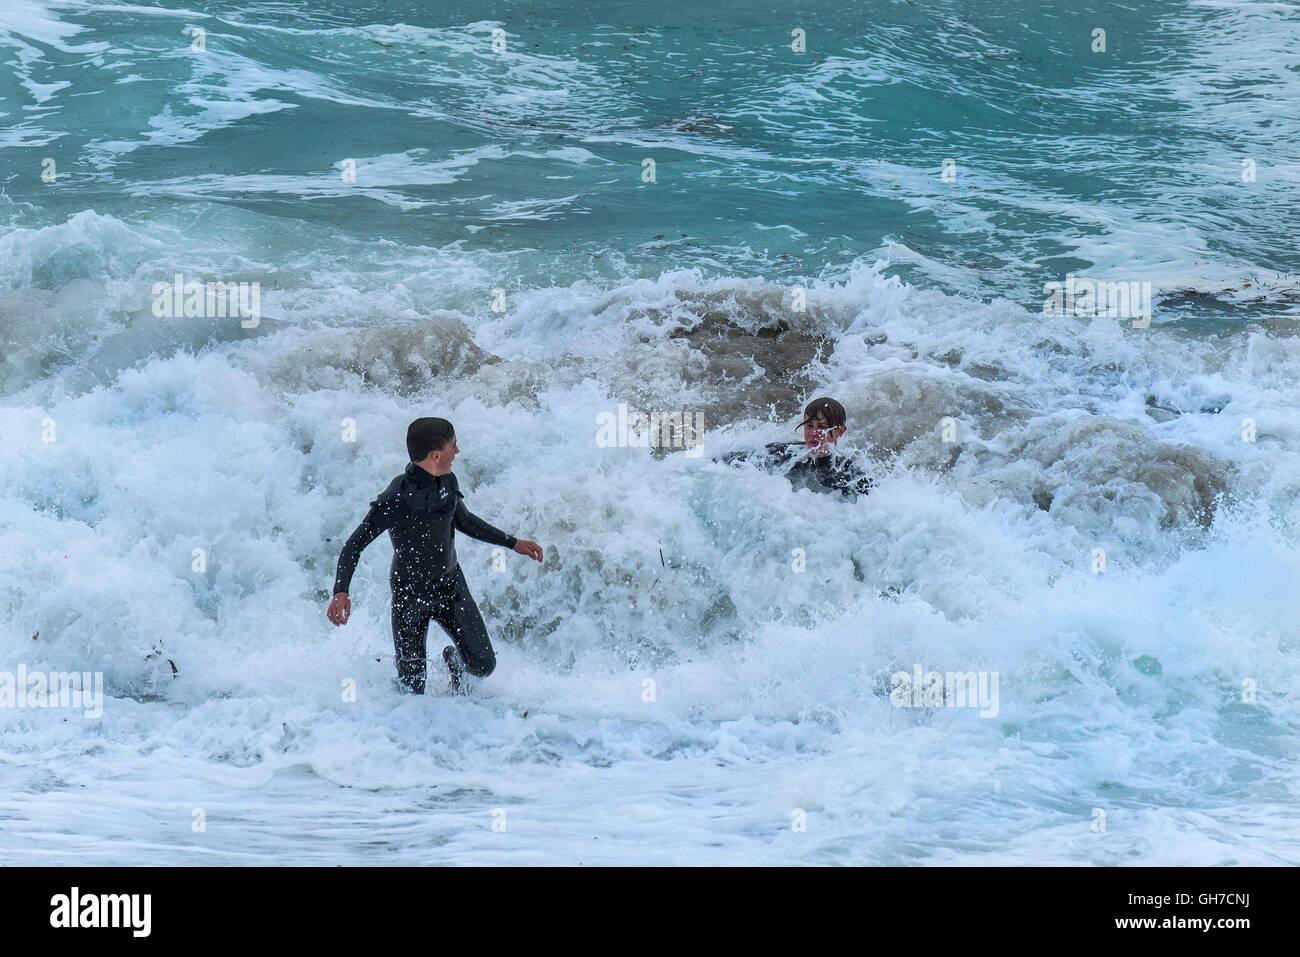 Two teenagers playing in very rough waves. - Stock Image